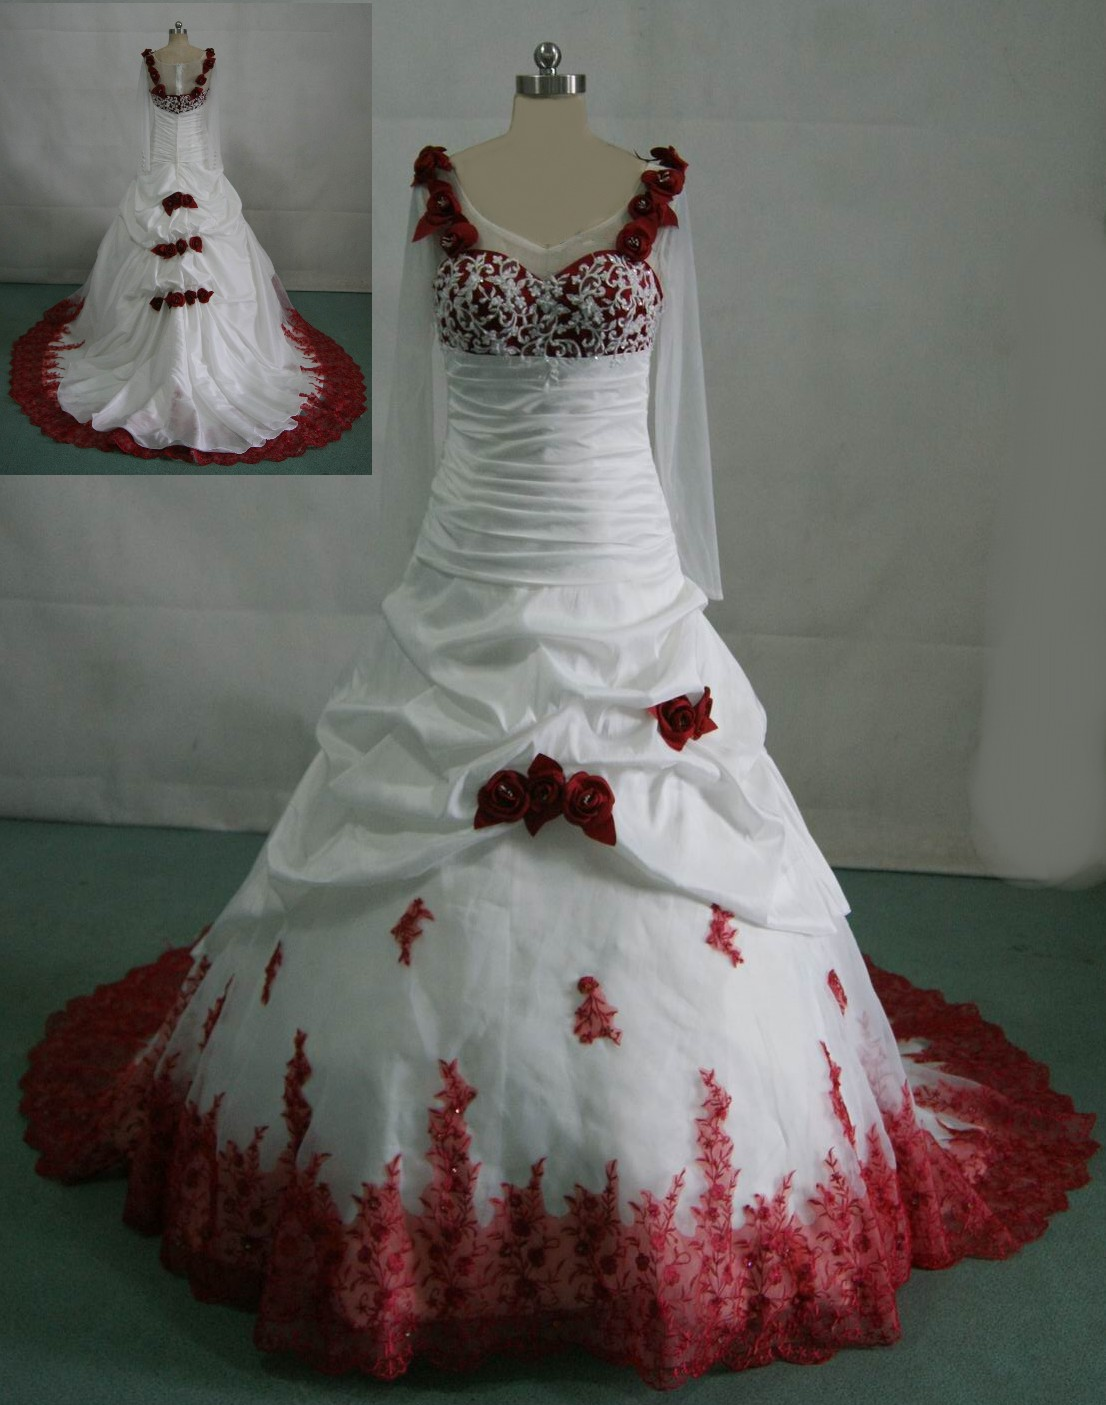 Bridal gowns with color red wedding dresses White wedding gown with red roses on the dress